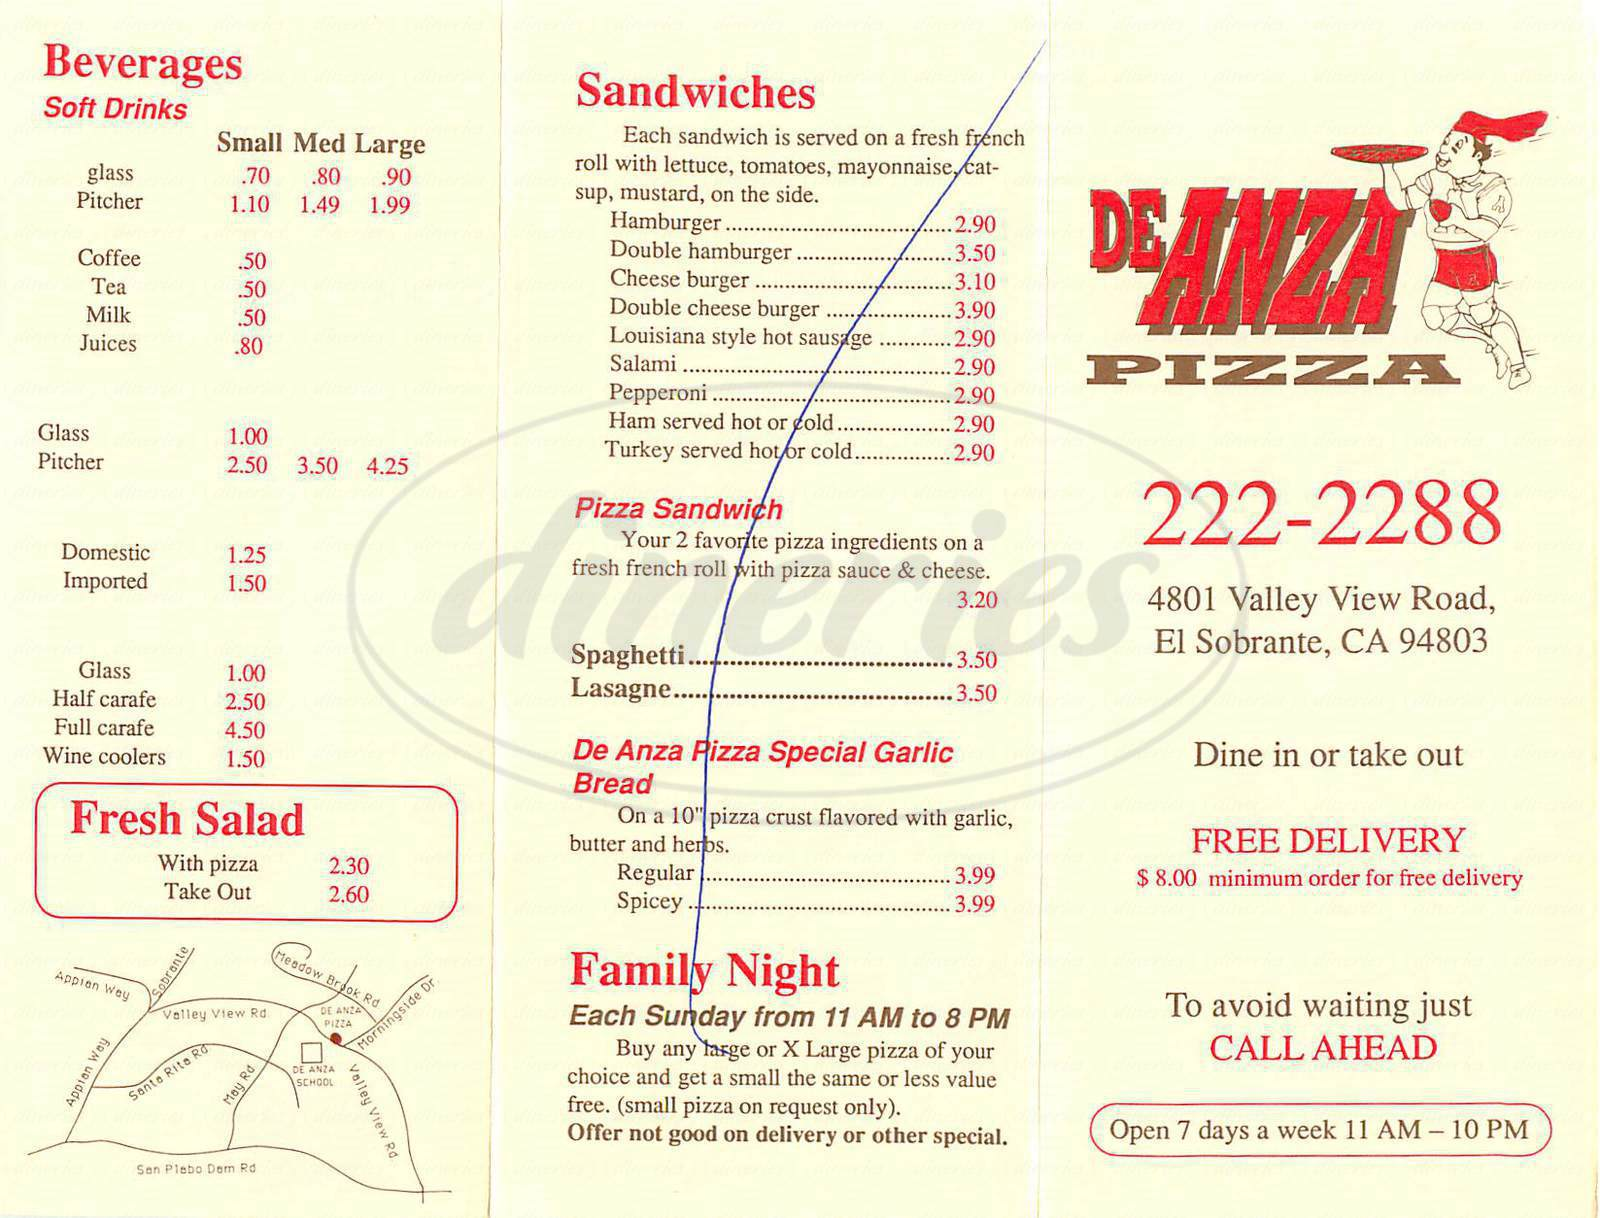 menu for De Anza Pizza